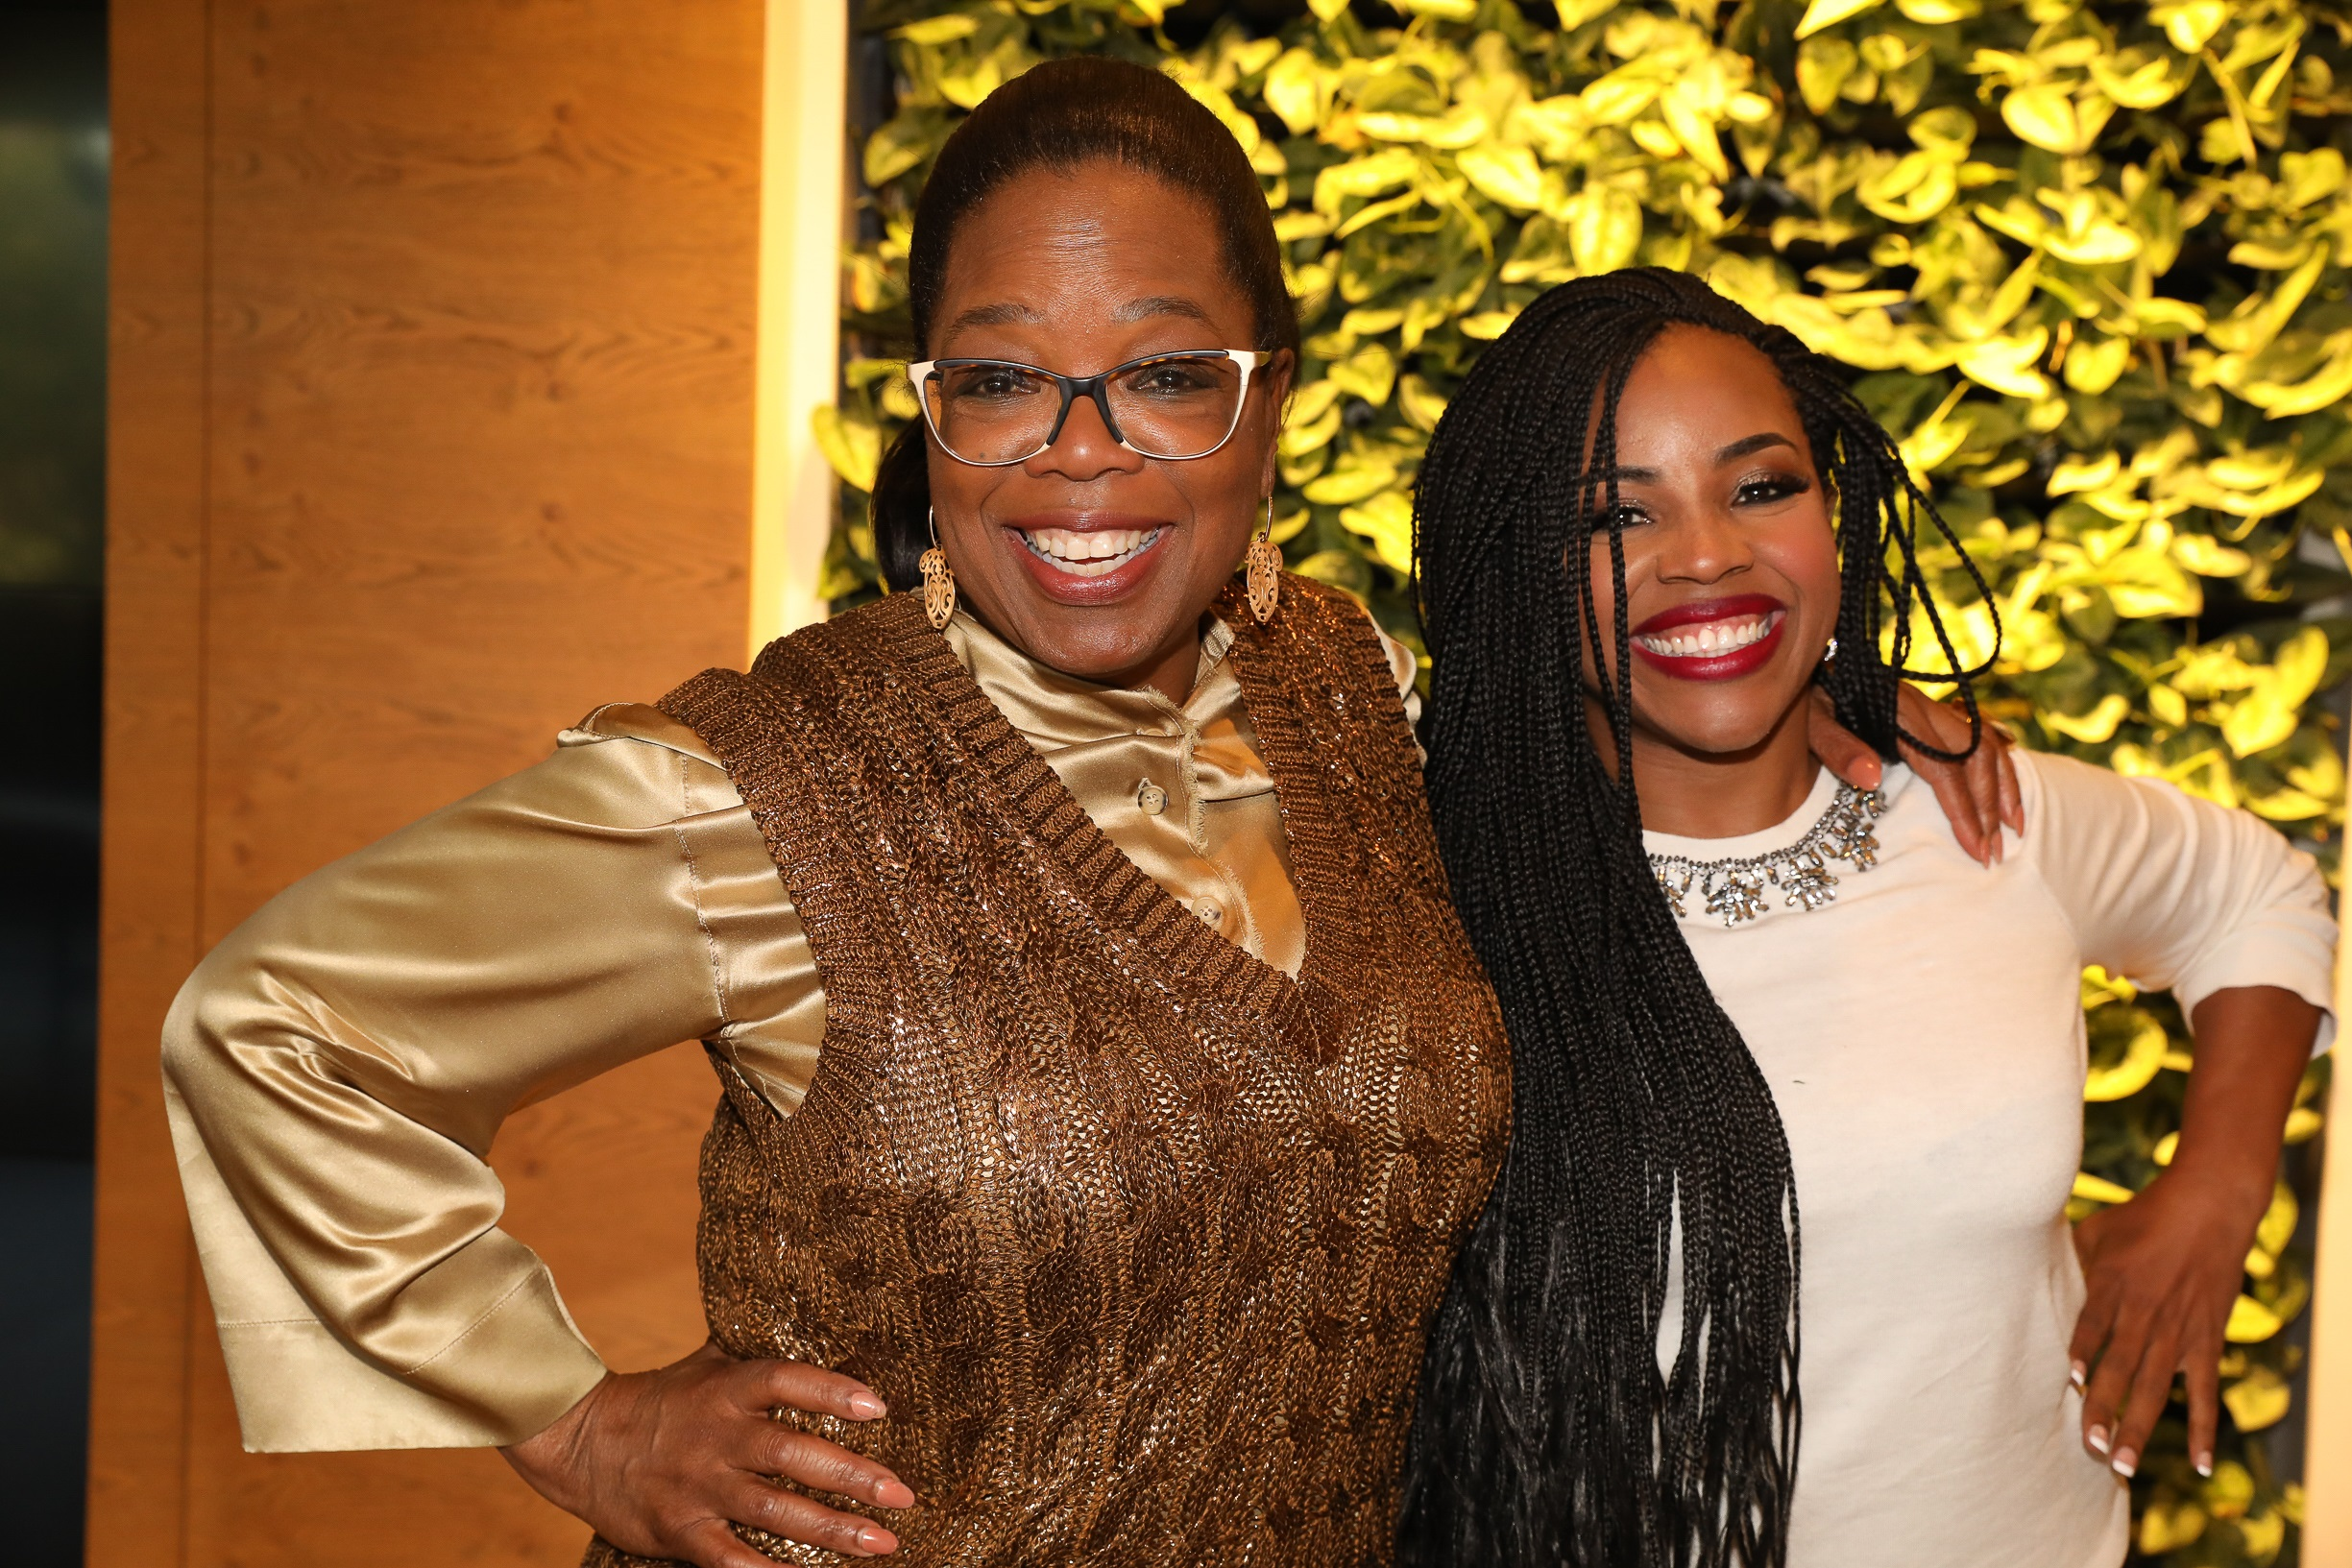 ONE OF THE MOST POWERFUL THINGS THAT I HAVE LEARNED FROM MS. WINFREY IS THE IMPORTANCE OF USING YOUR PERSONAL PLATFORM TO SERVE OTHERS! AT HER BIRTHDAY CELEBRATION THIS YEAR, SHE CHARGED US TO OPEN OUR HEARTS WIDE ENOUGH TO RECEIVE THE LOVE WE DESIRE! I WOULD LIKE TO SHARE MY HEART AND PLATFORM WITH YOU!